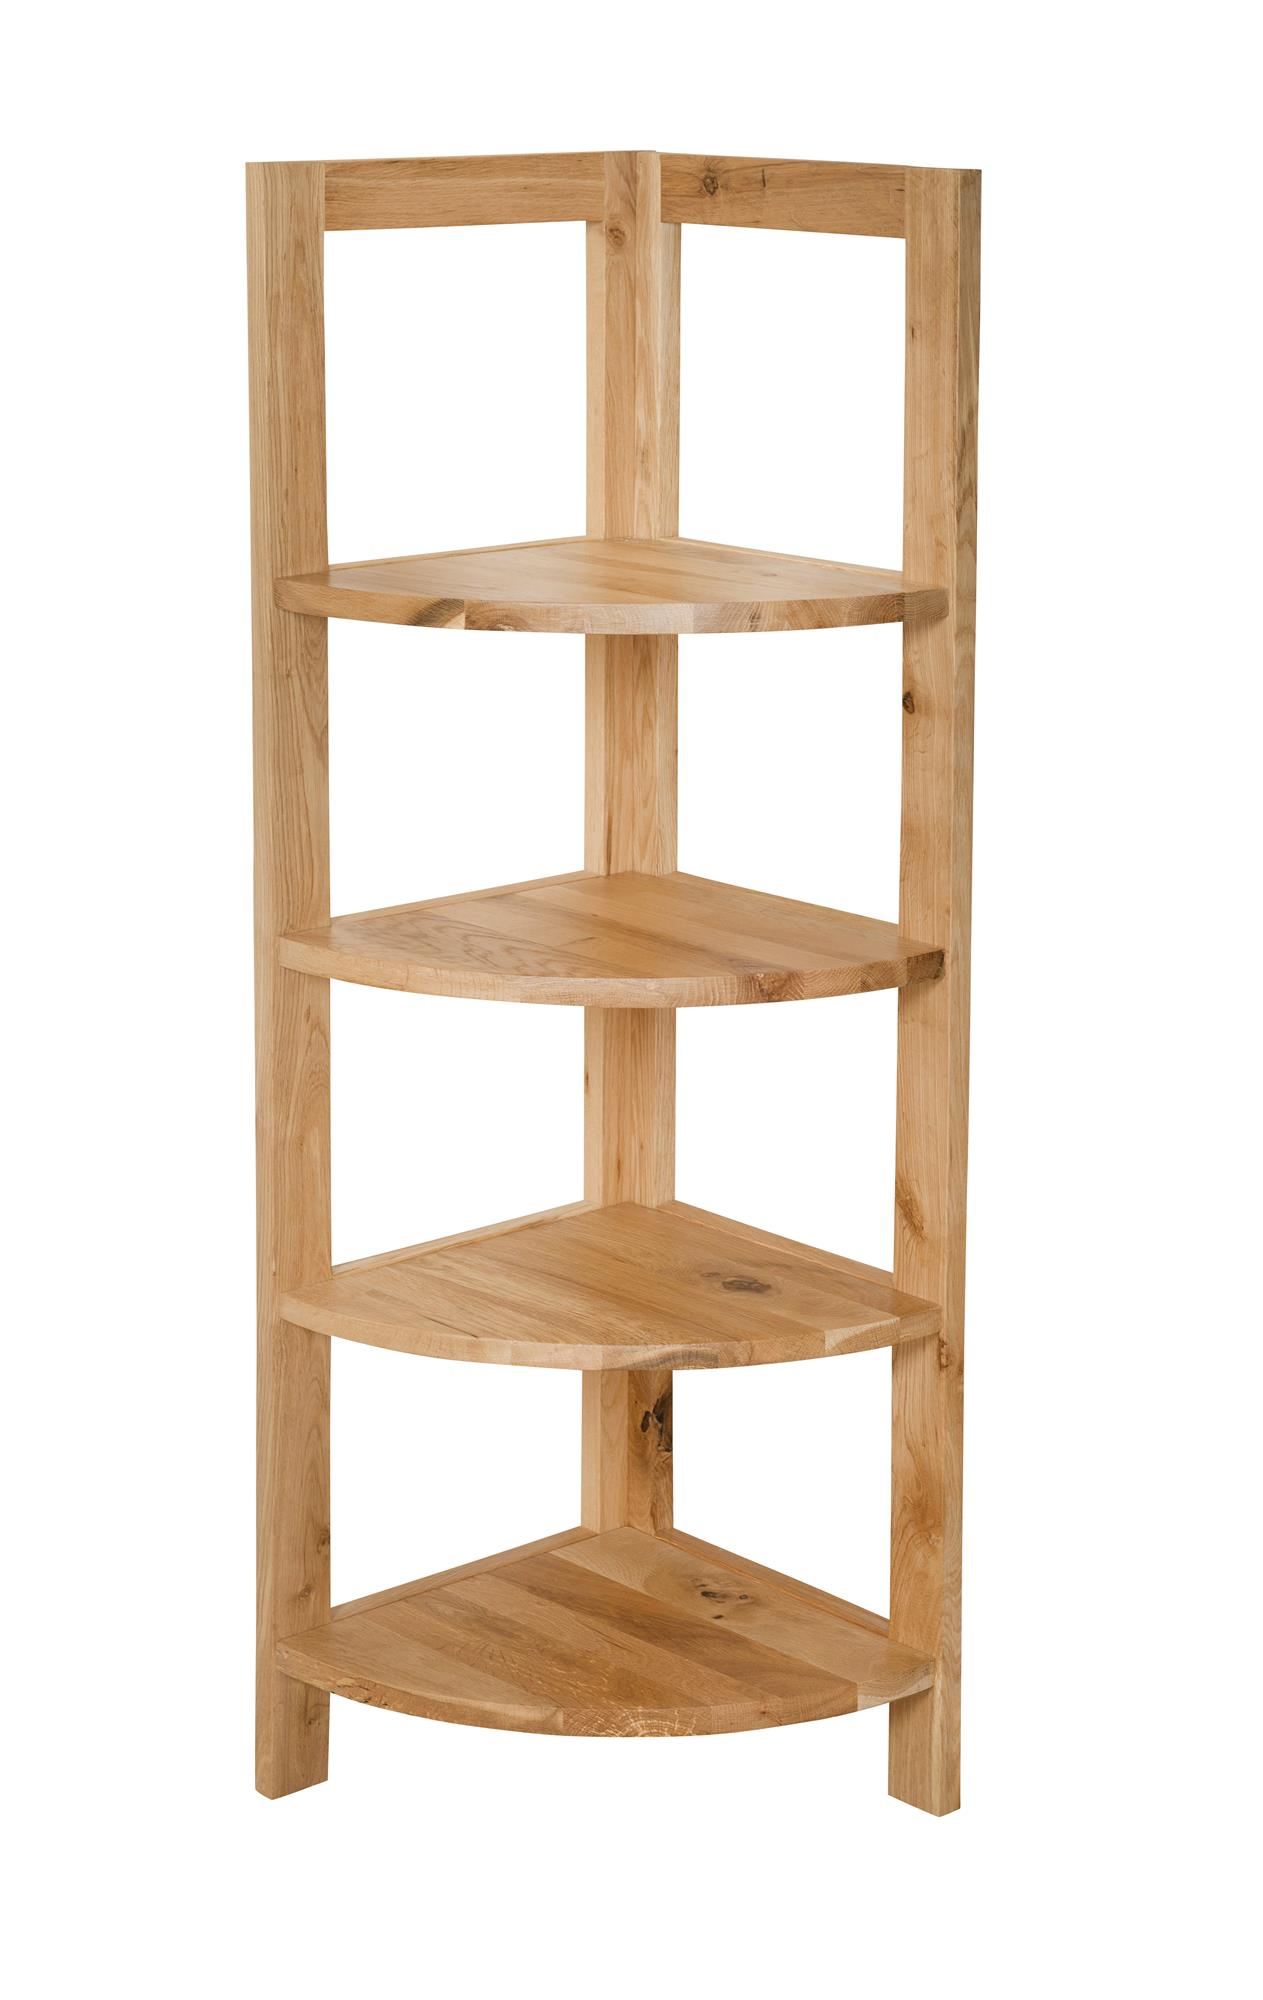 OAK - 4 SHELF CORNER STAND